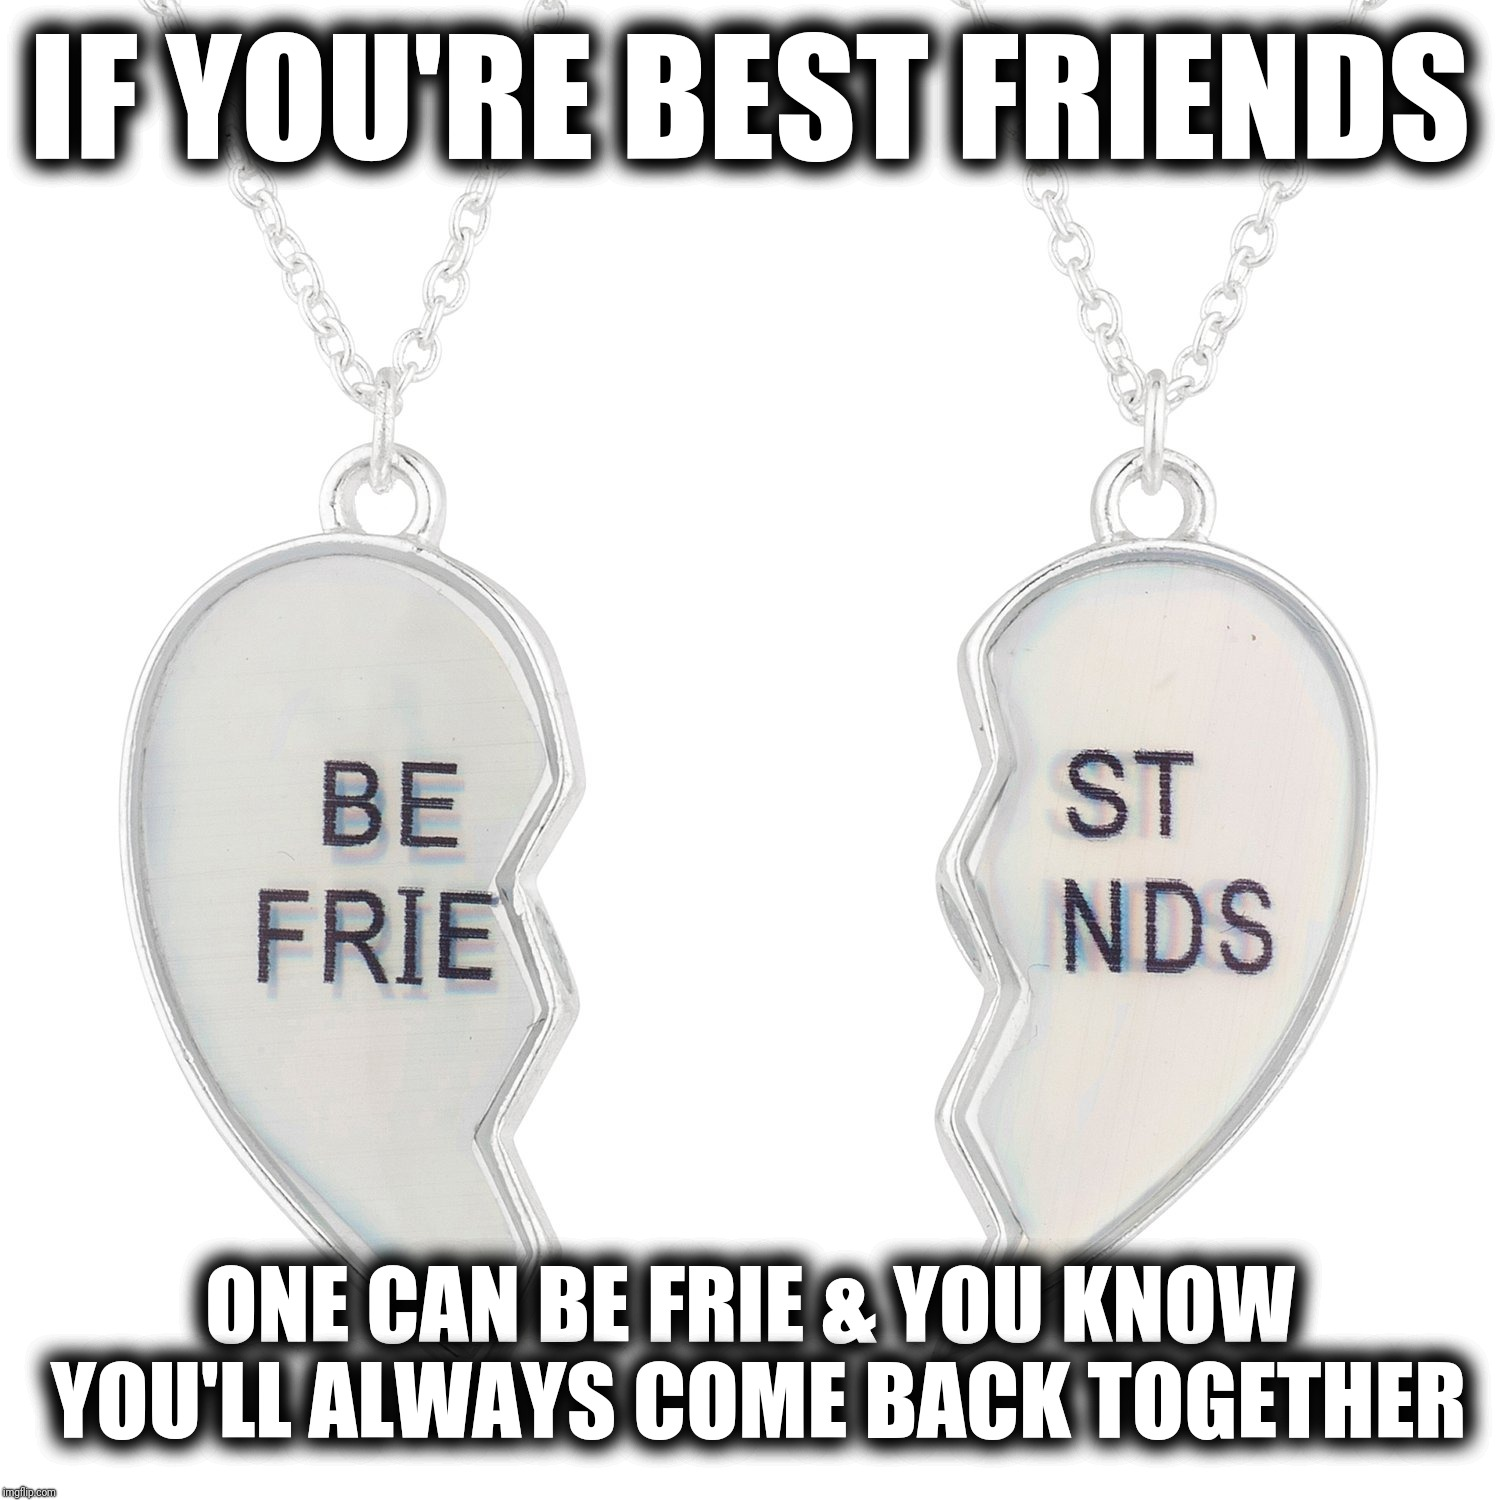 Best Friends Always Come Back Together | IF YOU'RE BEST FRIENDS ONE CAN BE FRIE & YOU KNOW YOU'LL ALWAYS COME BACK TOGETHER | image tagged in best friends  be free,best friends,come back,hope,bffs,bff | made w/ Imgflip meme maker